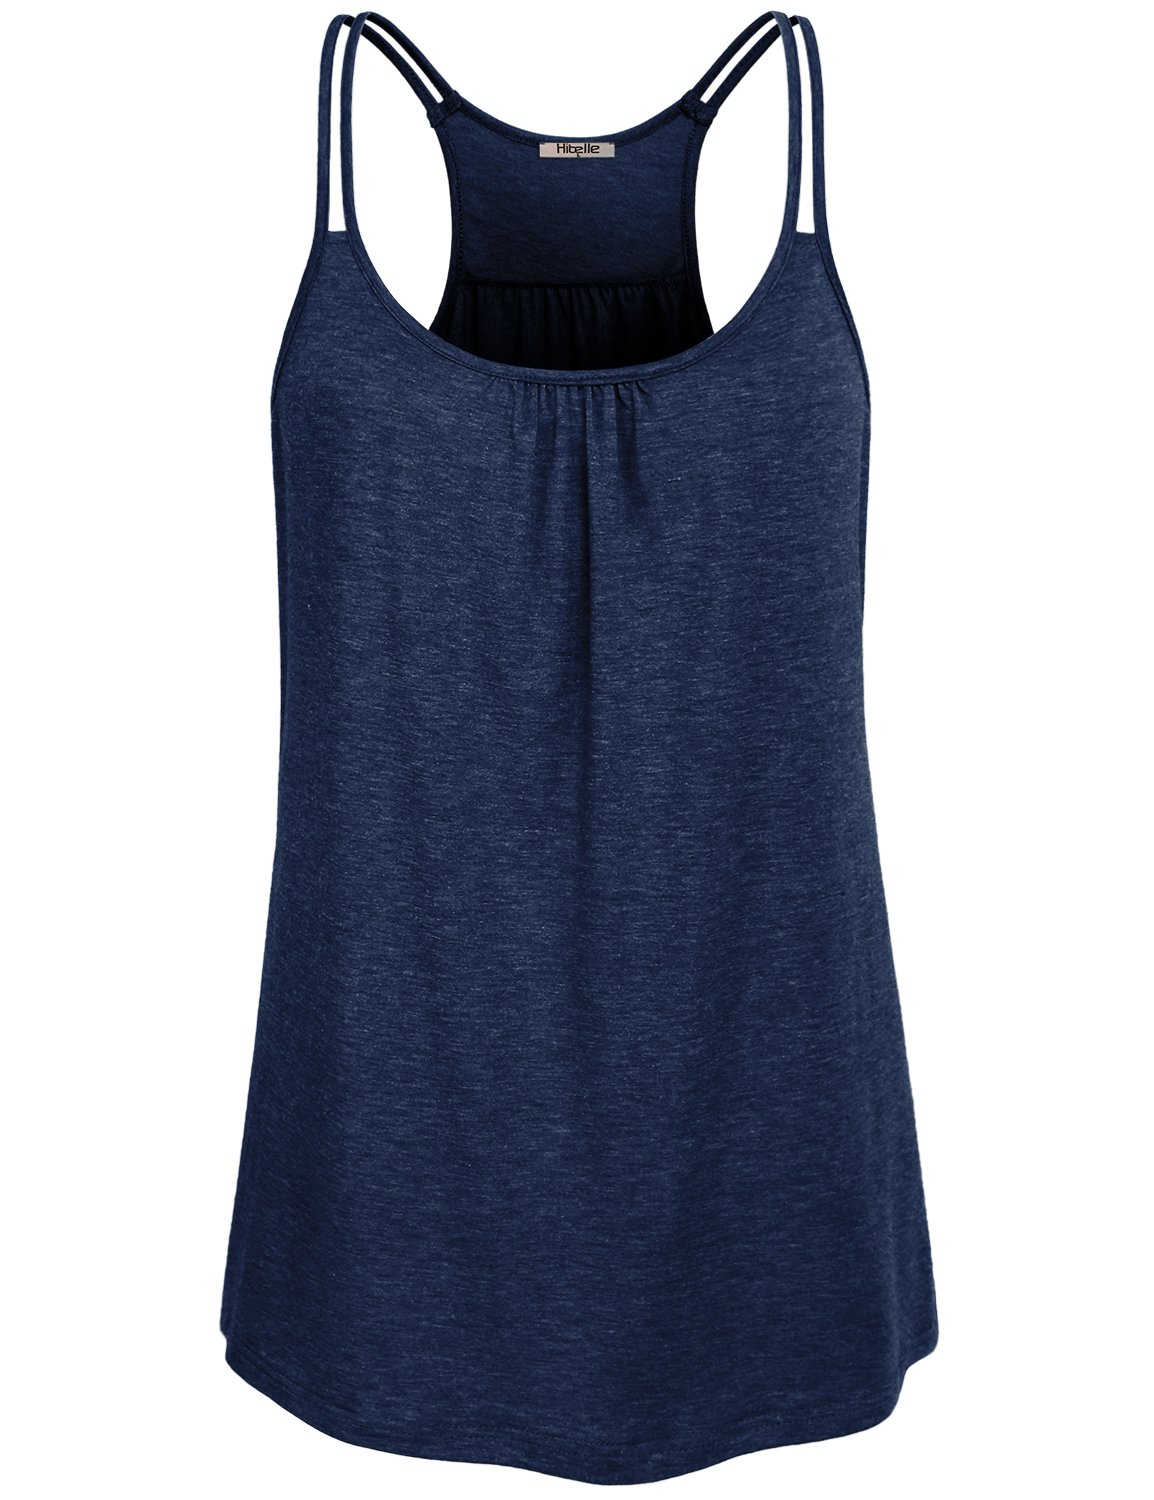 Hibelle Long Tank Tops for Women, Ladies Special Strapys Camisoles Racerback Pleated Front Behind U Neck Tunics A Line Curved Hem Beautiful Clothing Quick Dry Walking Shirts Blue Large